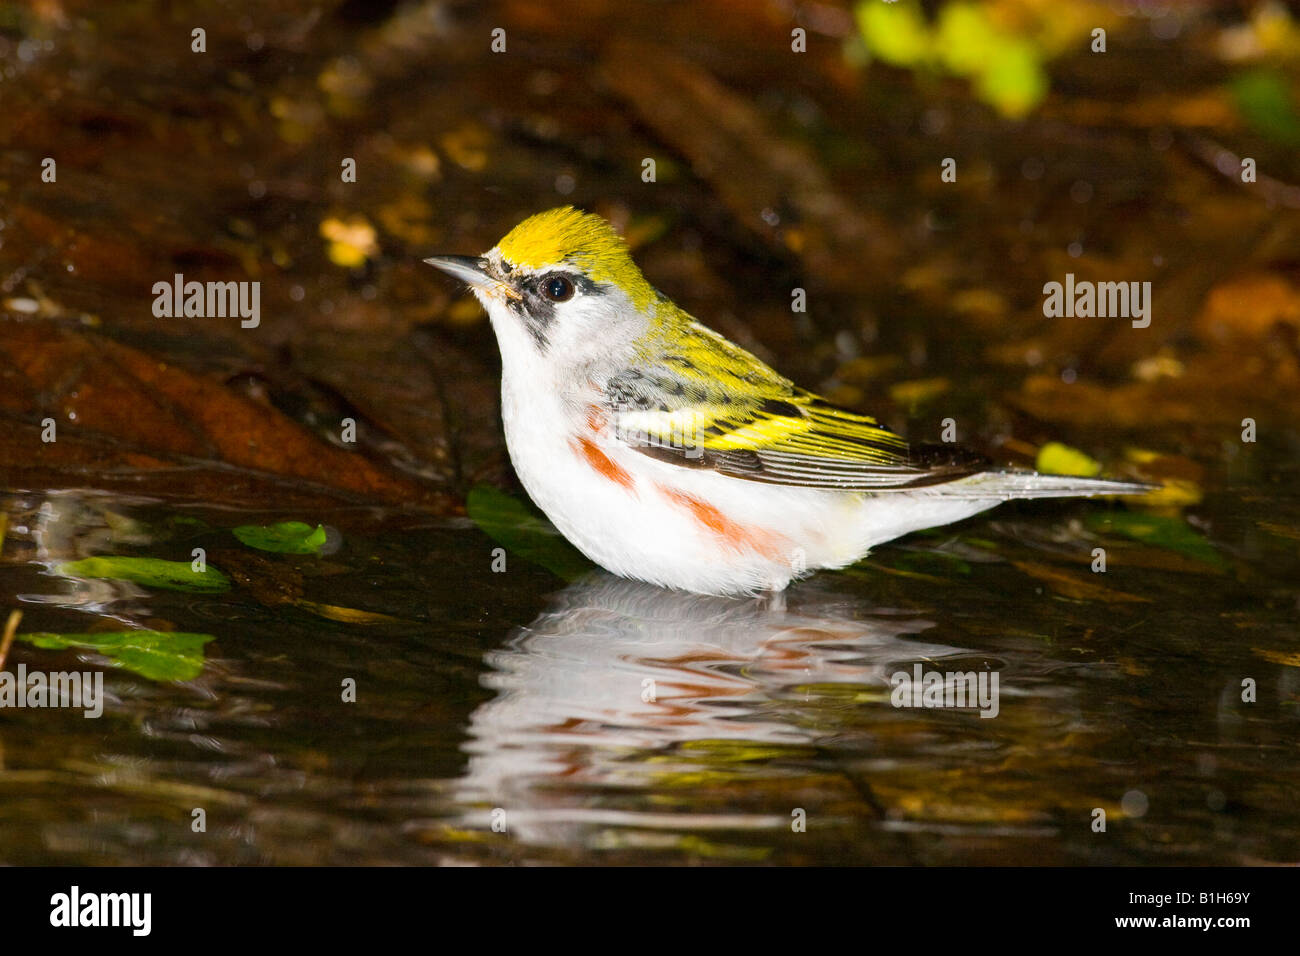 Reflection of a Chestnut-Sided warbler (Dendroica pensylvanica) in water Stock Photo